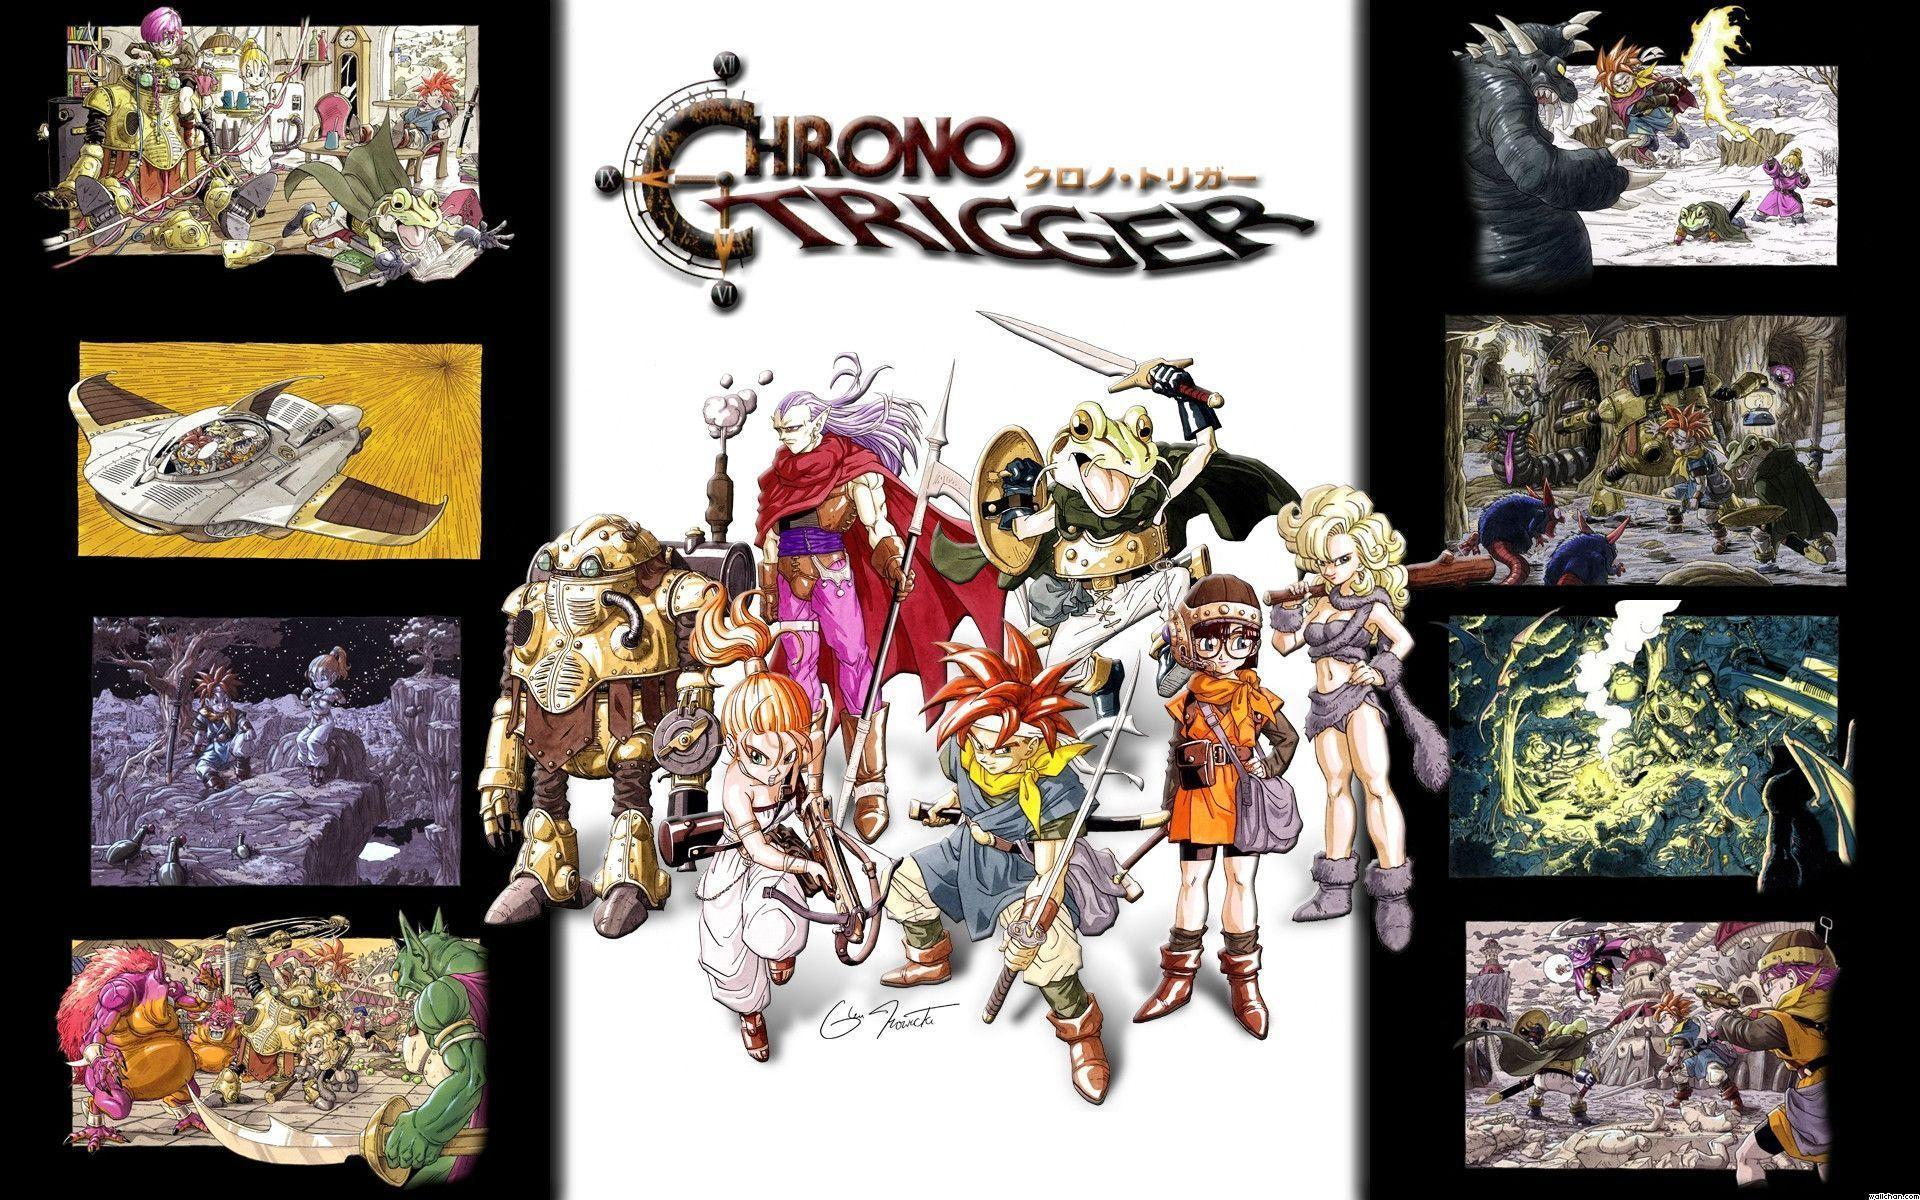 chrono trigger wallpapers – 1920×1200 High Definition Wallpapers